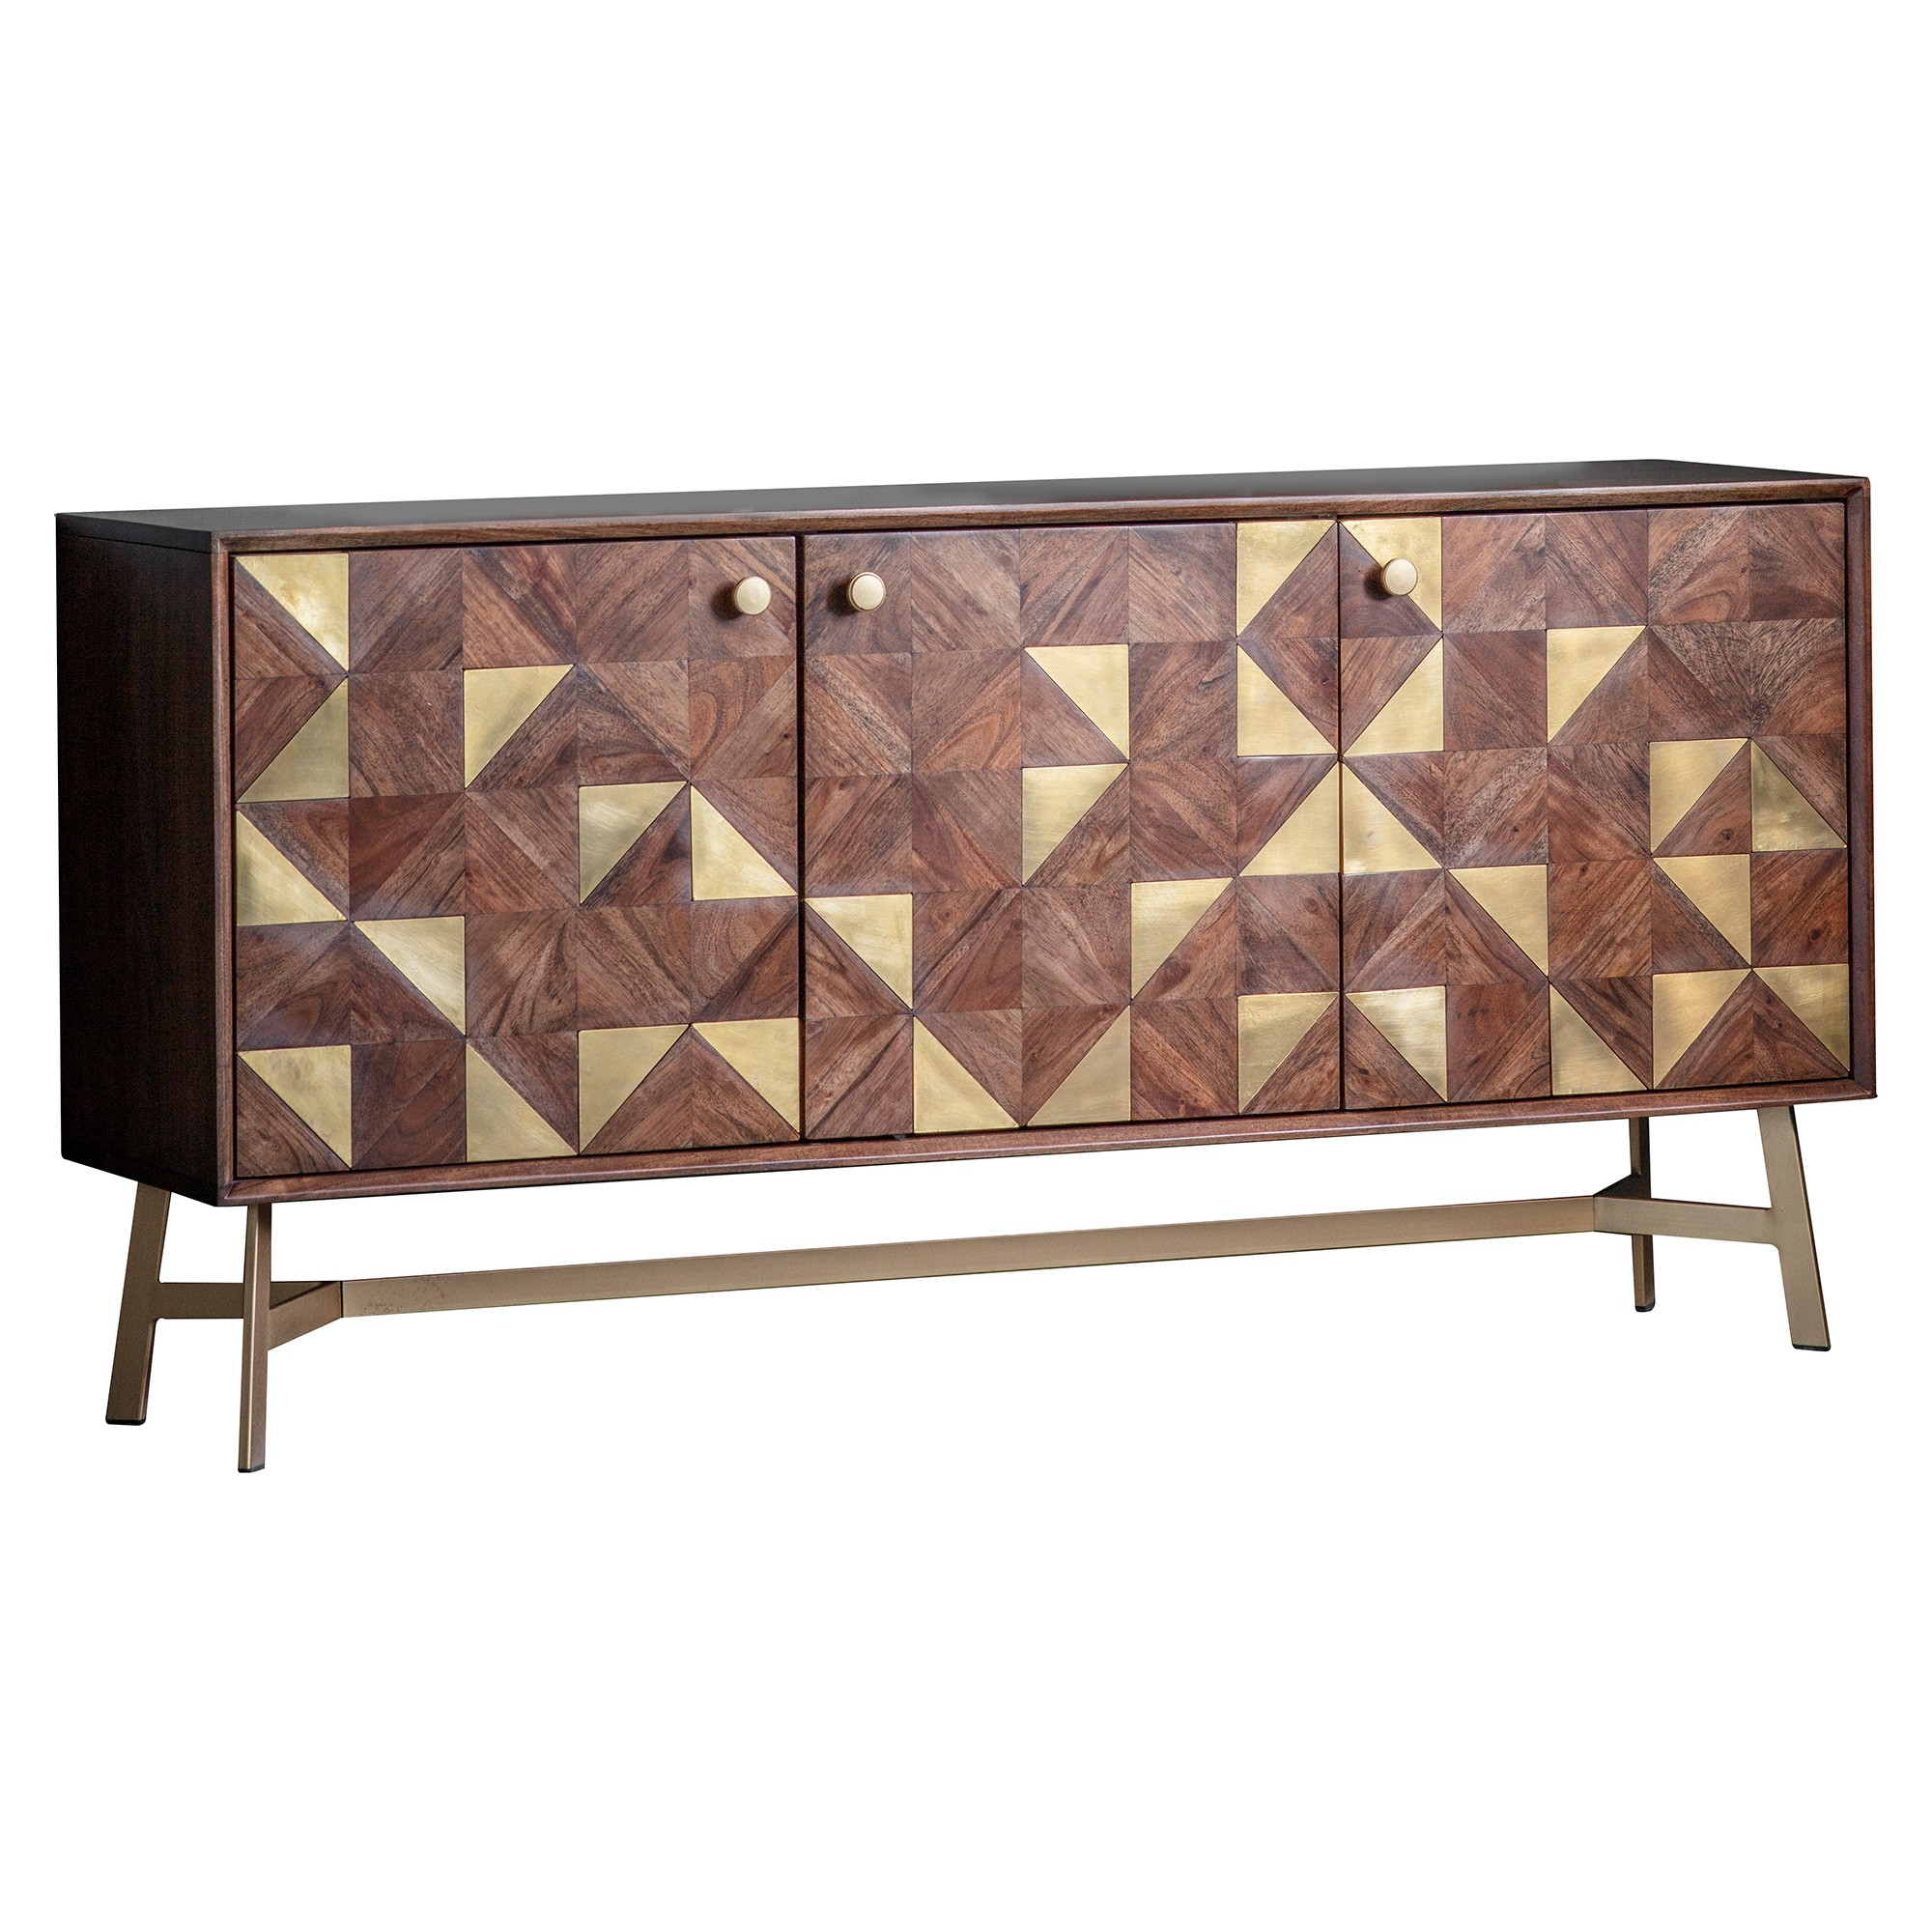 Toth Acacia Timber 3 Door Sideboard, 142cm